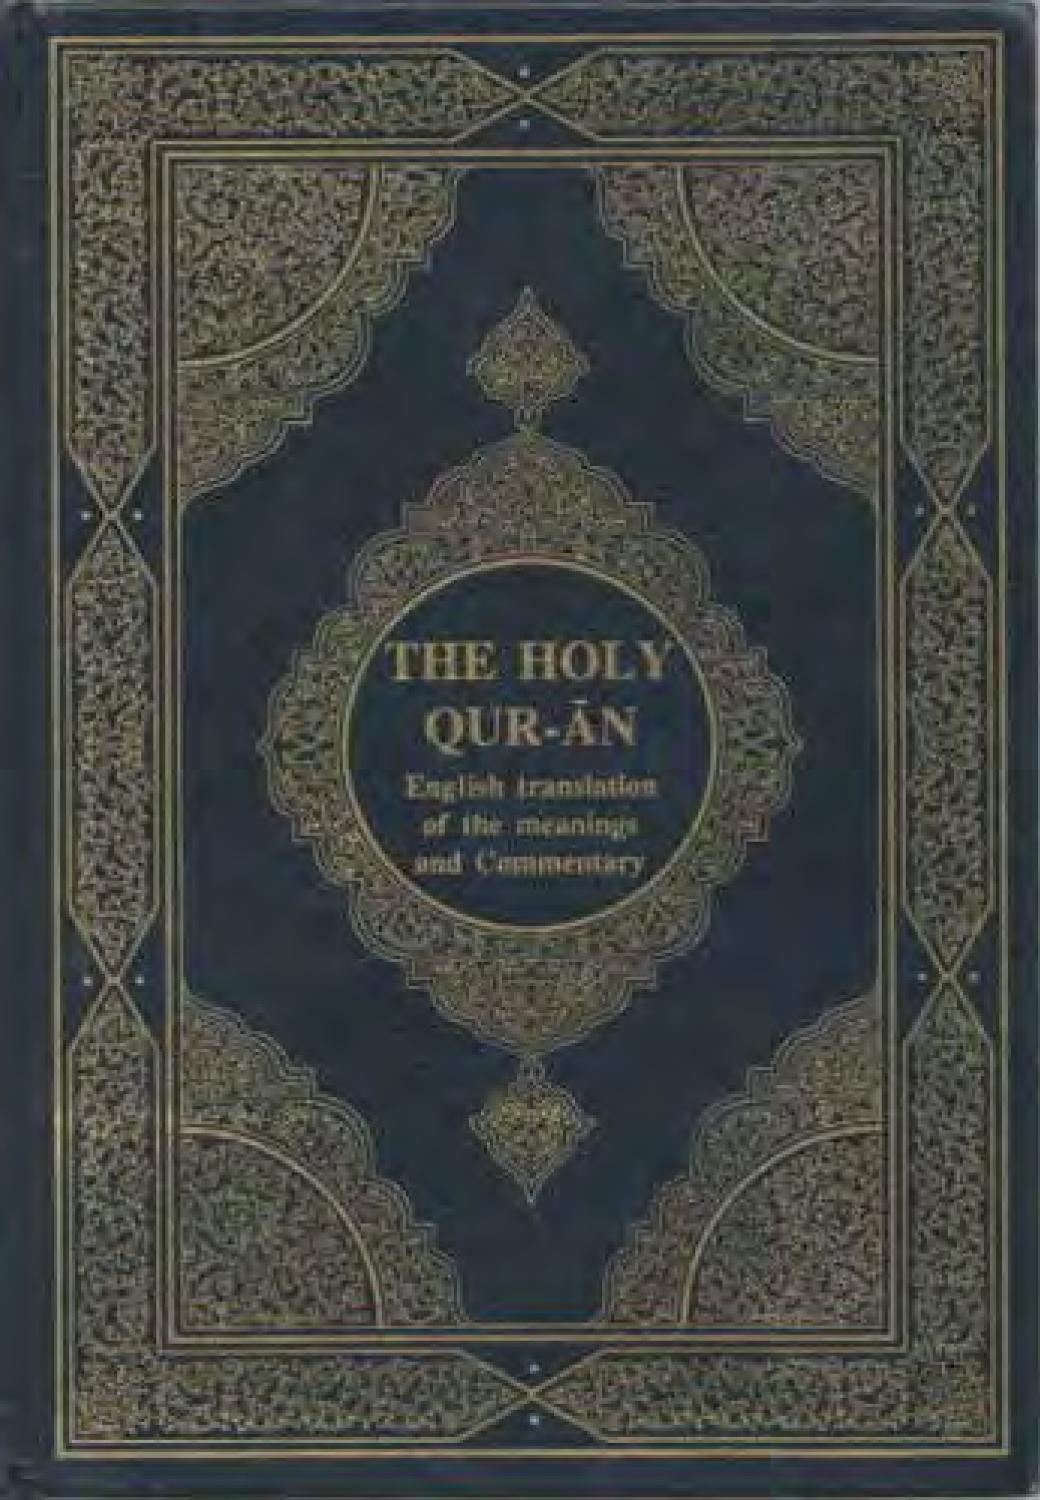 Citaten Quran English : The holy quran english translation of meaning and